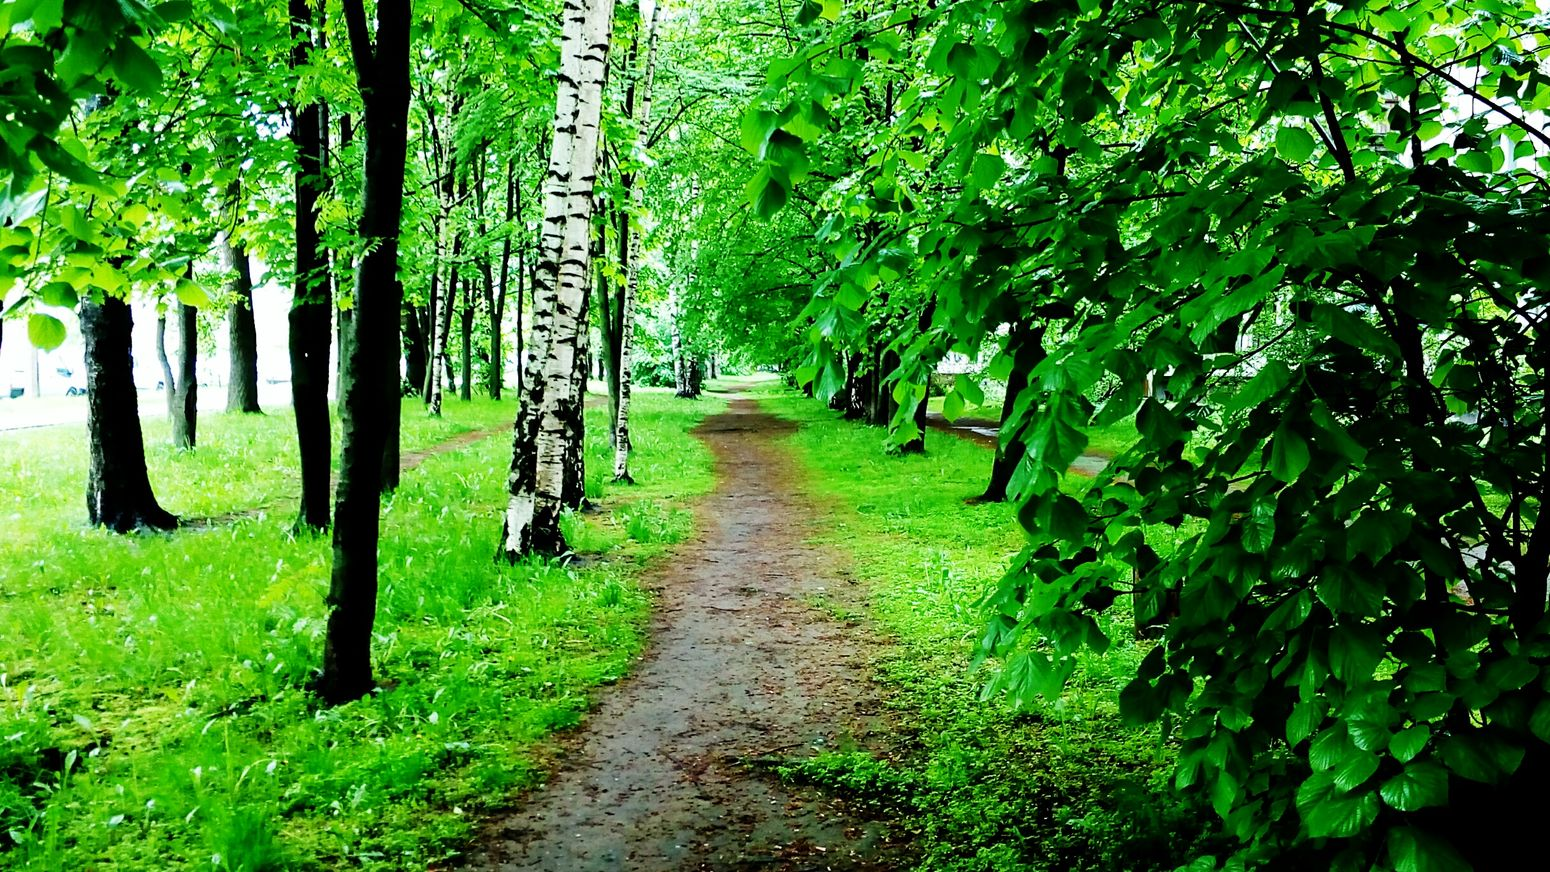 Sankt-Petersburg Springtime Green Color Rainy Days Just Walking Trees Magic City The Essence Of Summer